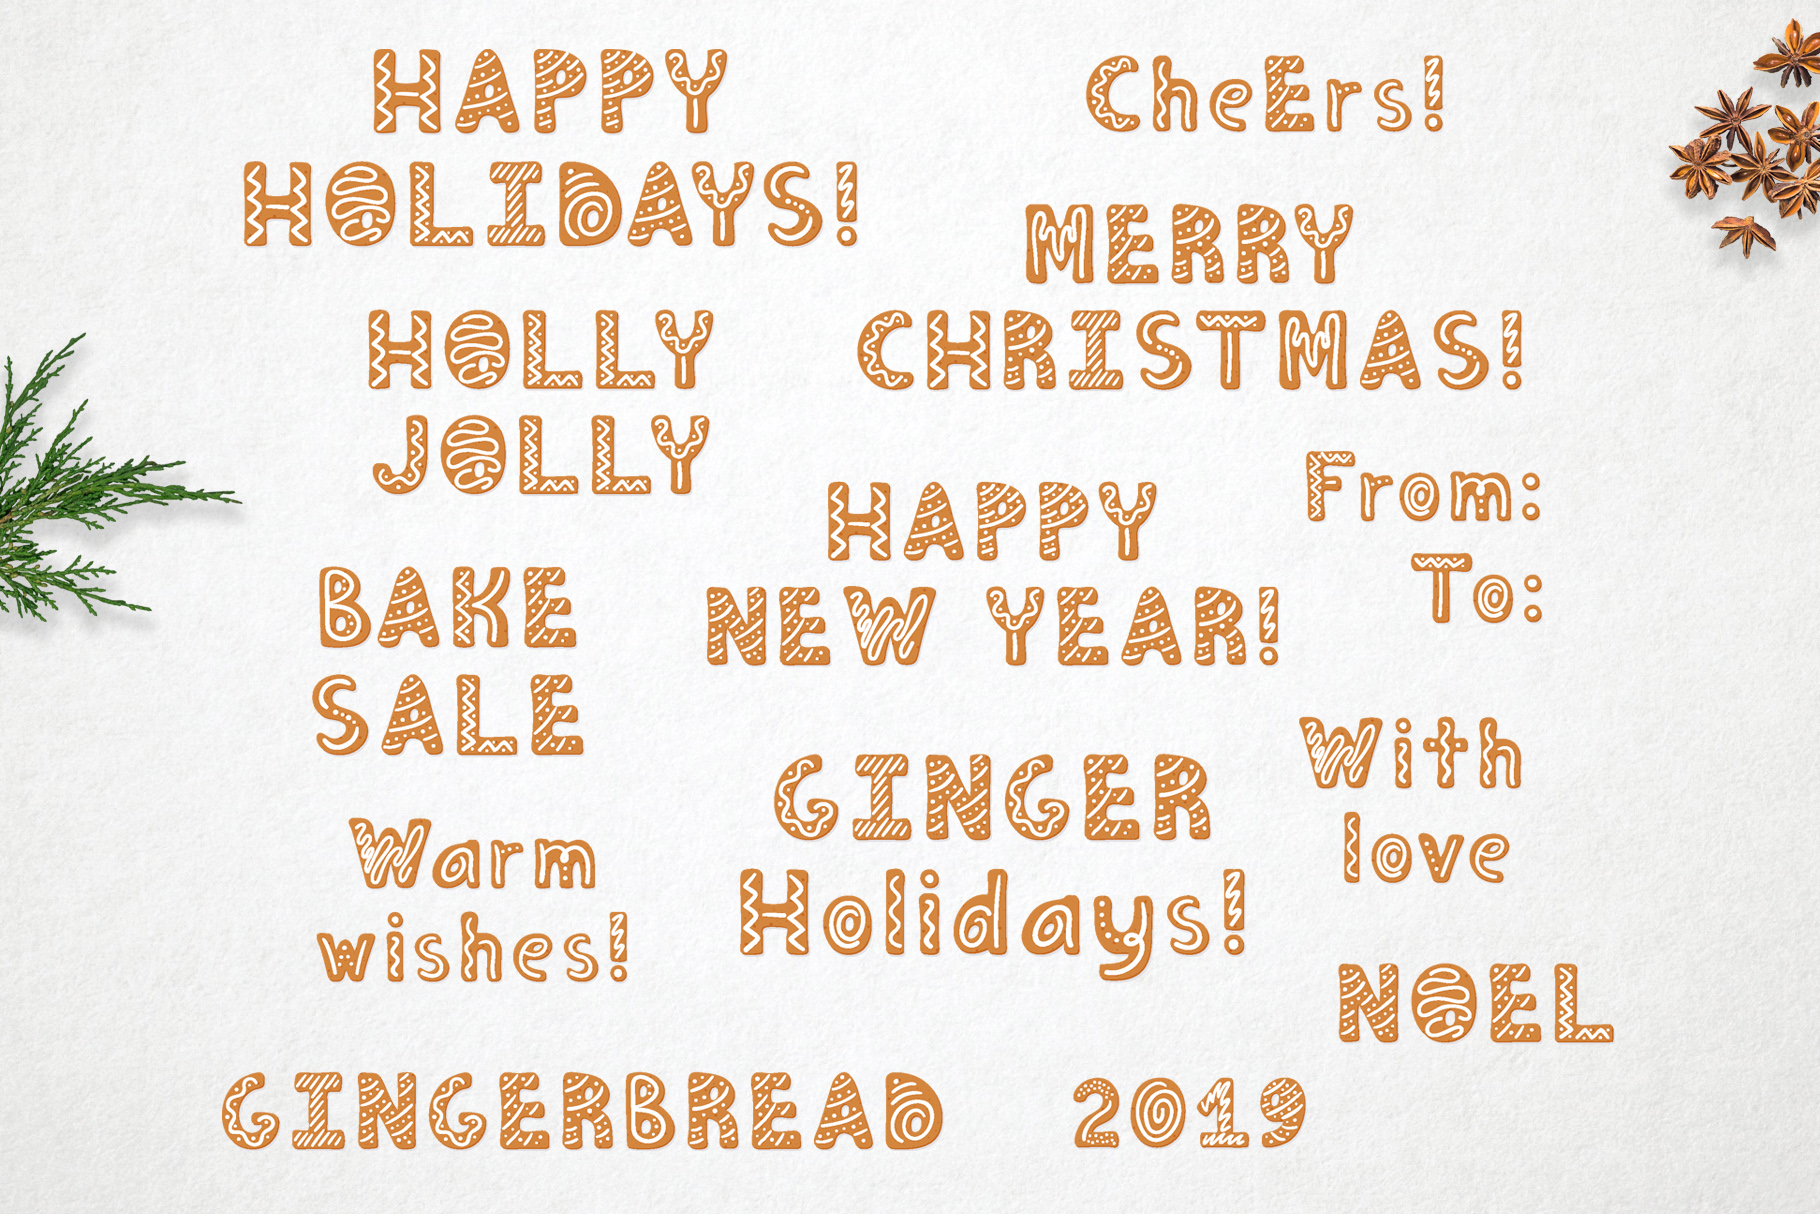 Gingerbread Christmas color SVG font example image 5